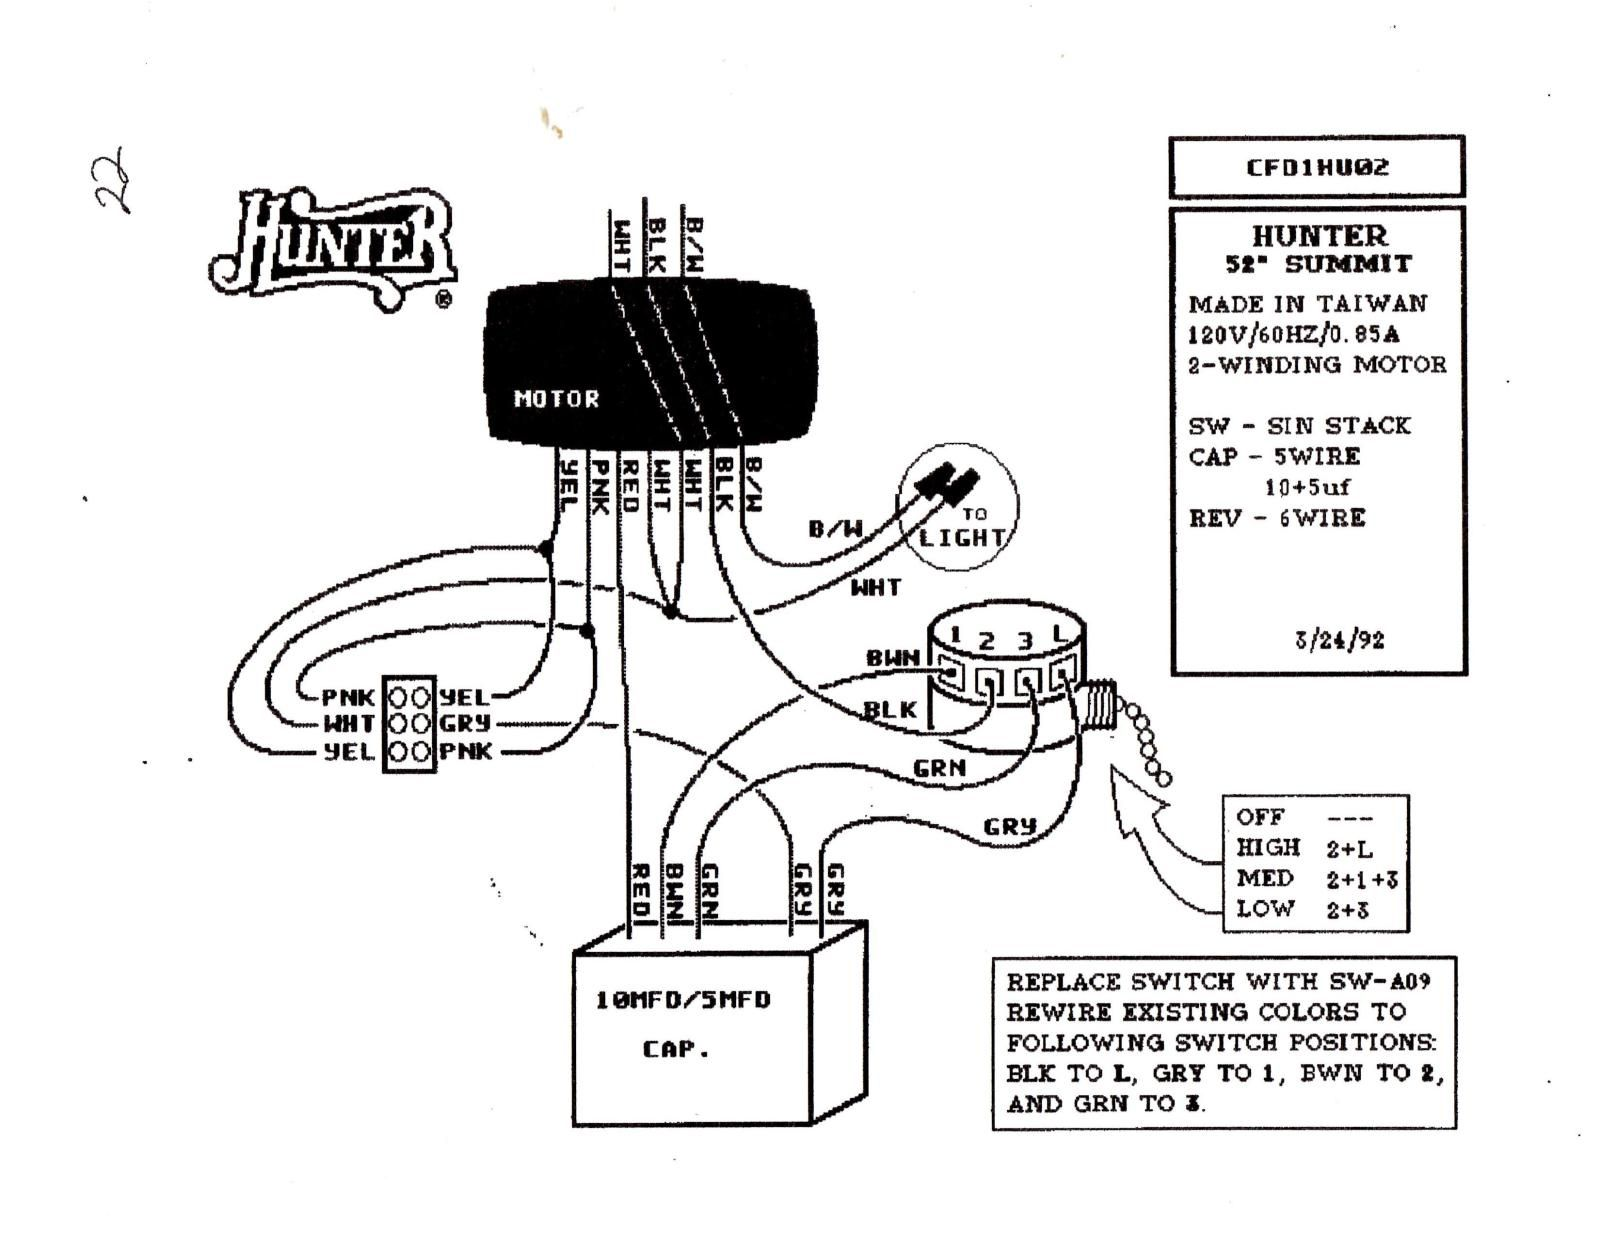 hunter ceiling fan speed switch wiring diagram [ 1600 x 1236 Pixel ]